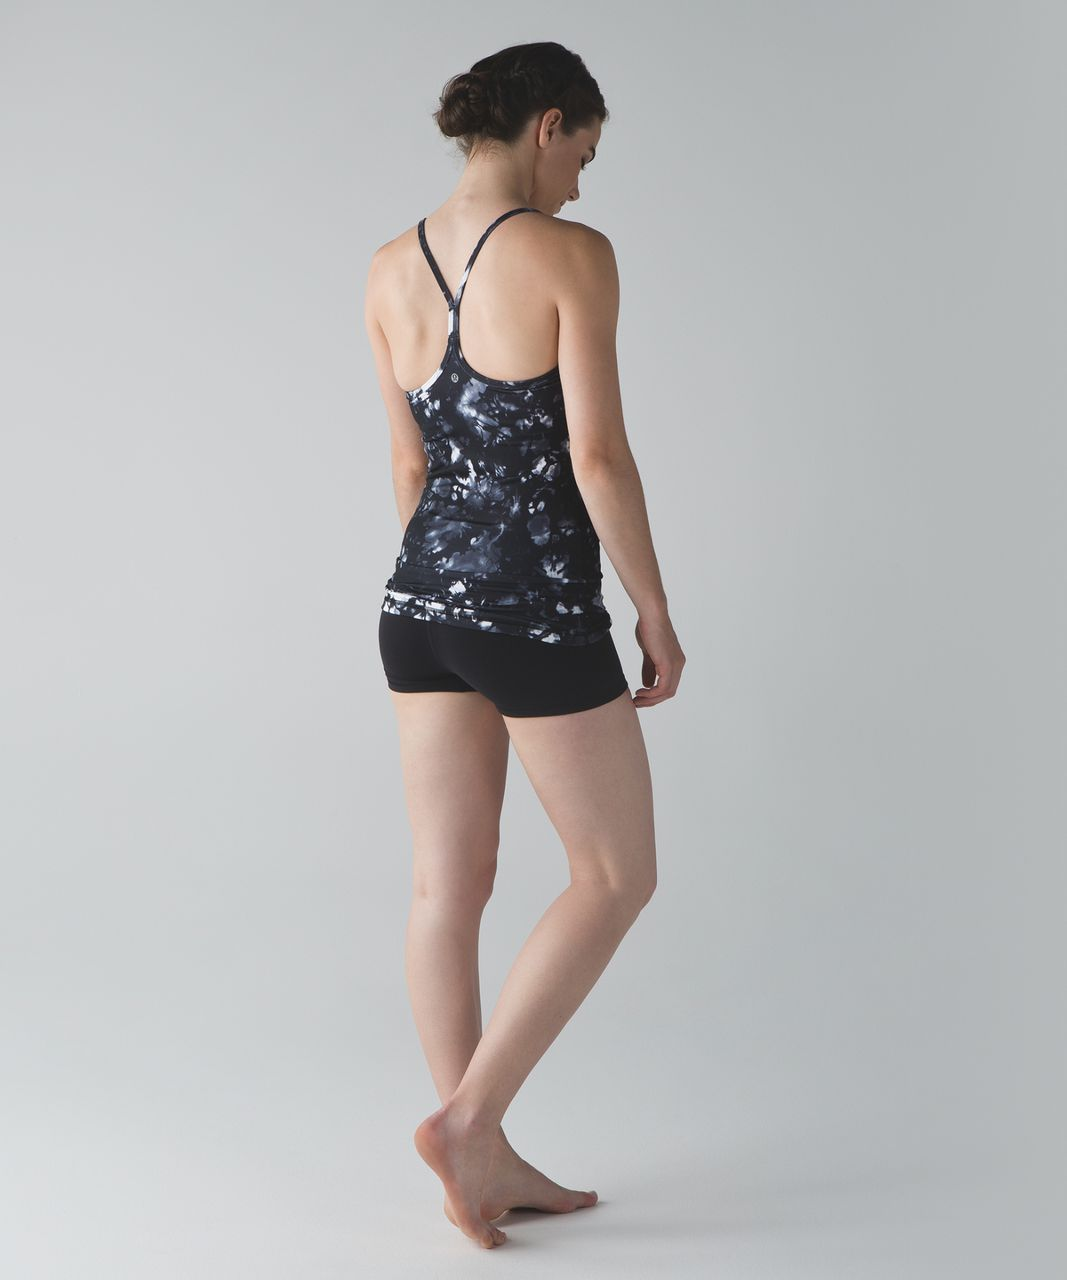 Lululemon Power Y Tank (Luon) - Dusk Dye White Black